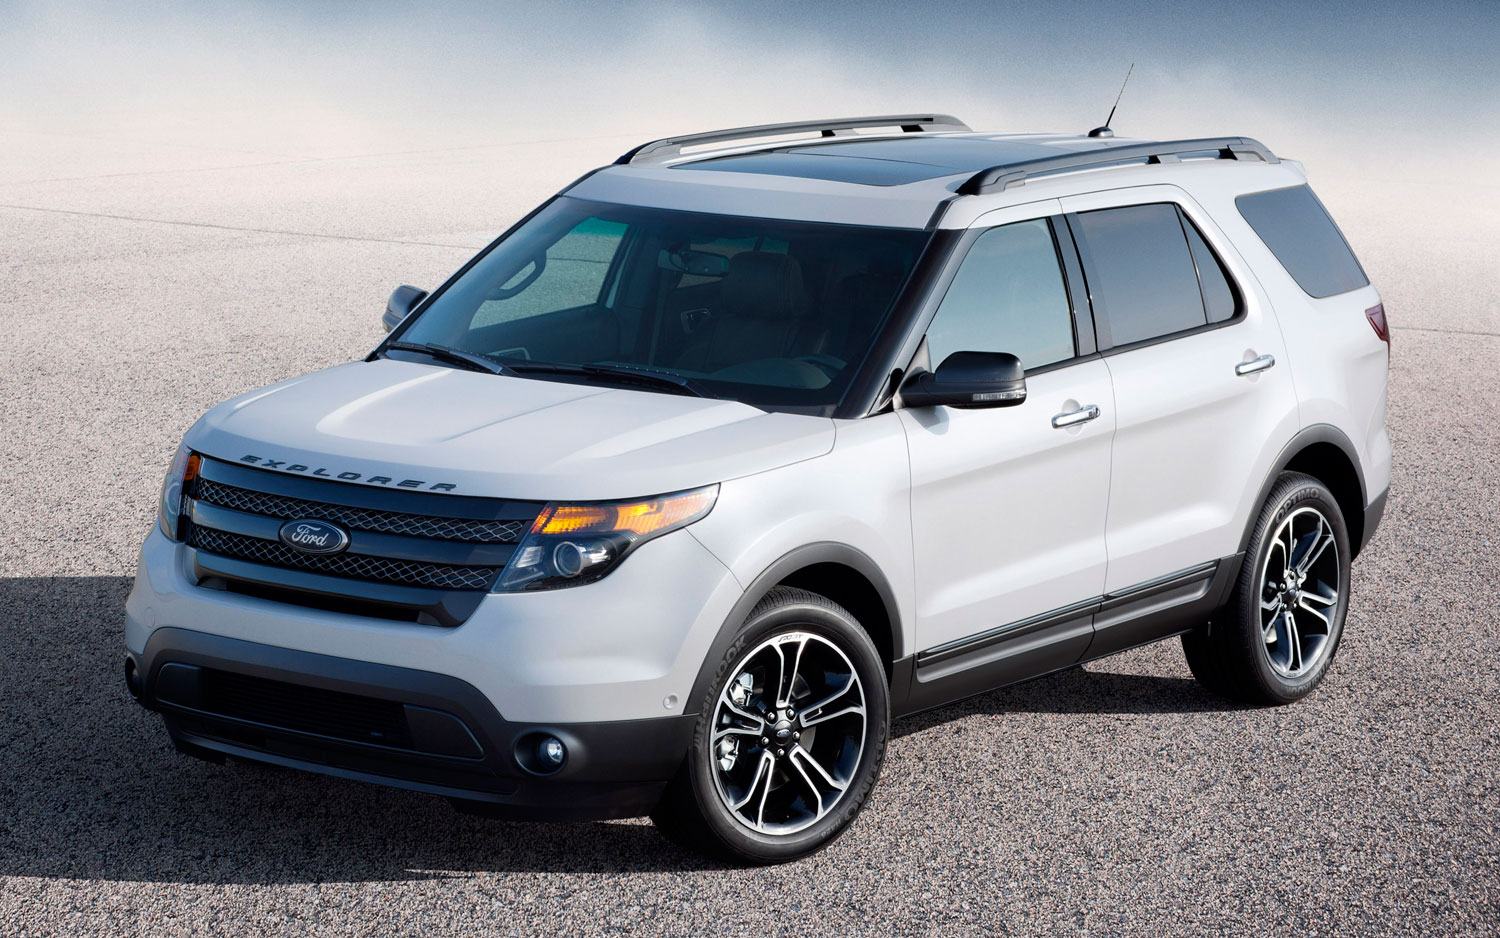 2013 Ford Explorer Sport Front Three Quarters View 21